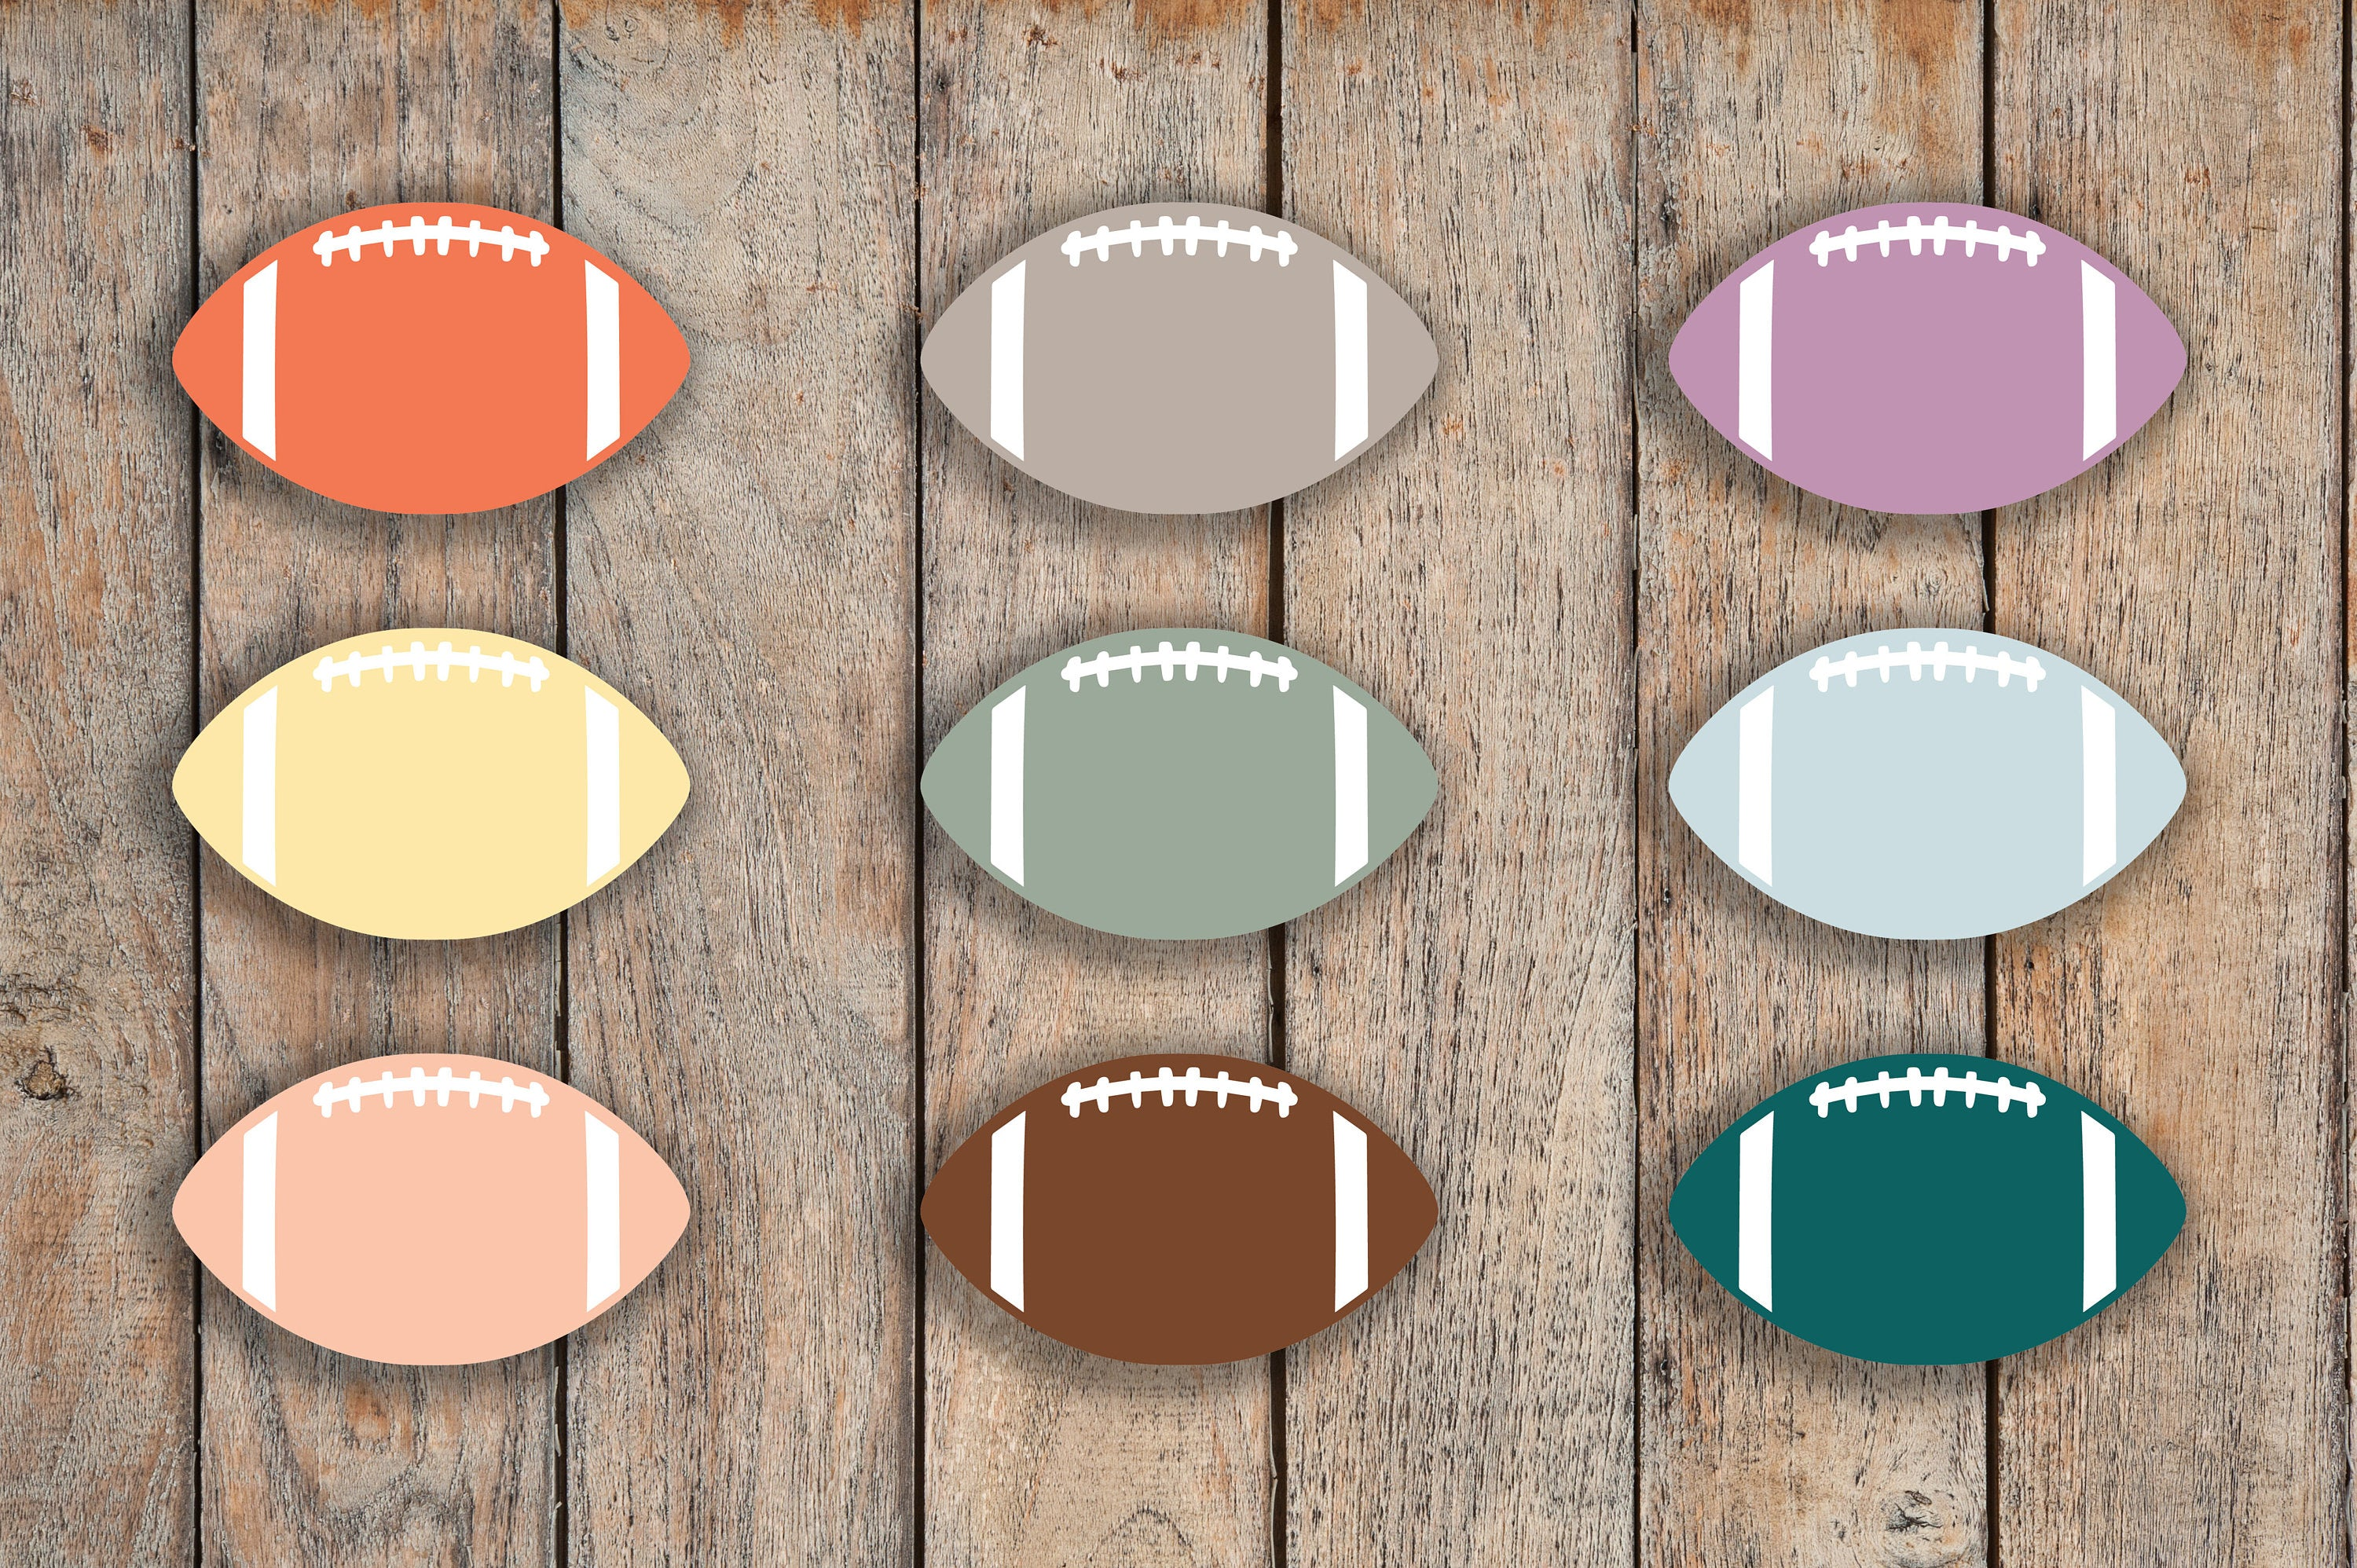 64 Football, Game Day, Sport Label Planner Stickers for 2018 inkWELL Press Planners, Erin Condren, Plum Paper IWP-Q216